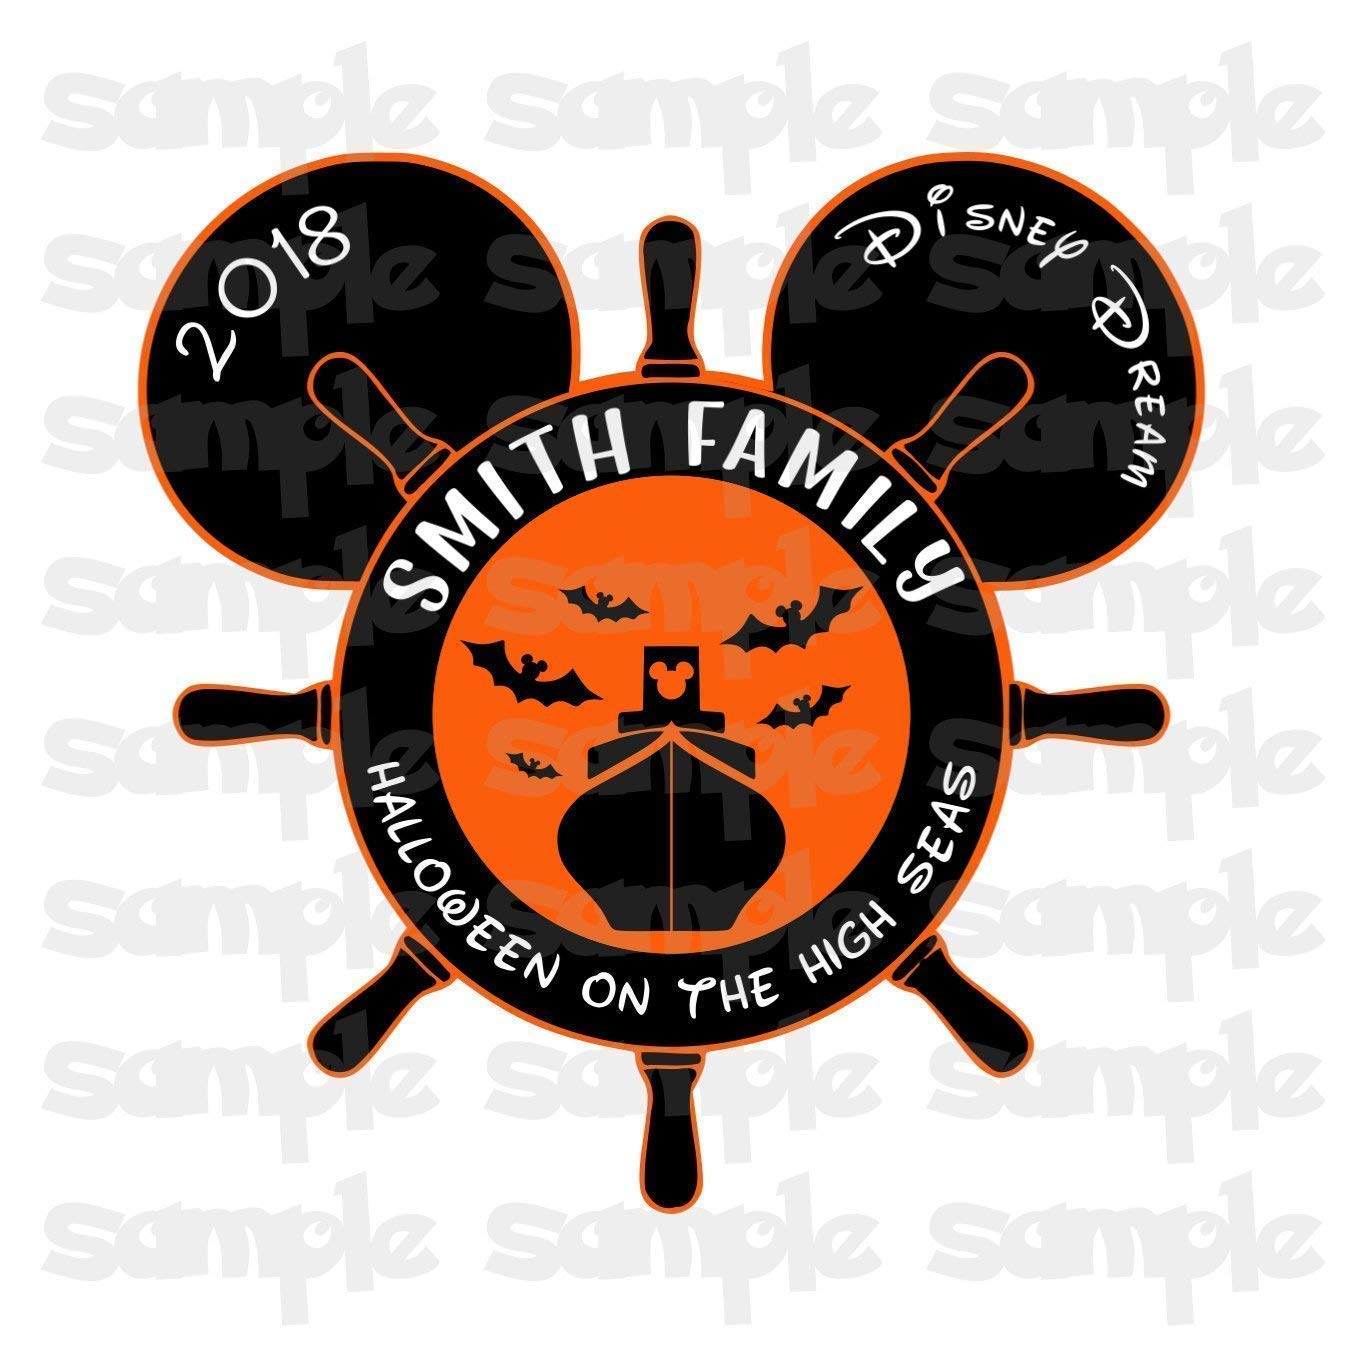 photo about Disney Cruise Door Decorations Printable called Disney Halloween Magnet Halloween upon the Substantial Seas Halloween Disney Cruise Magnet Household Magnet For Cruise Doorway